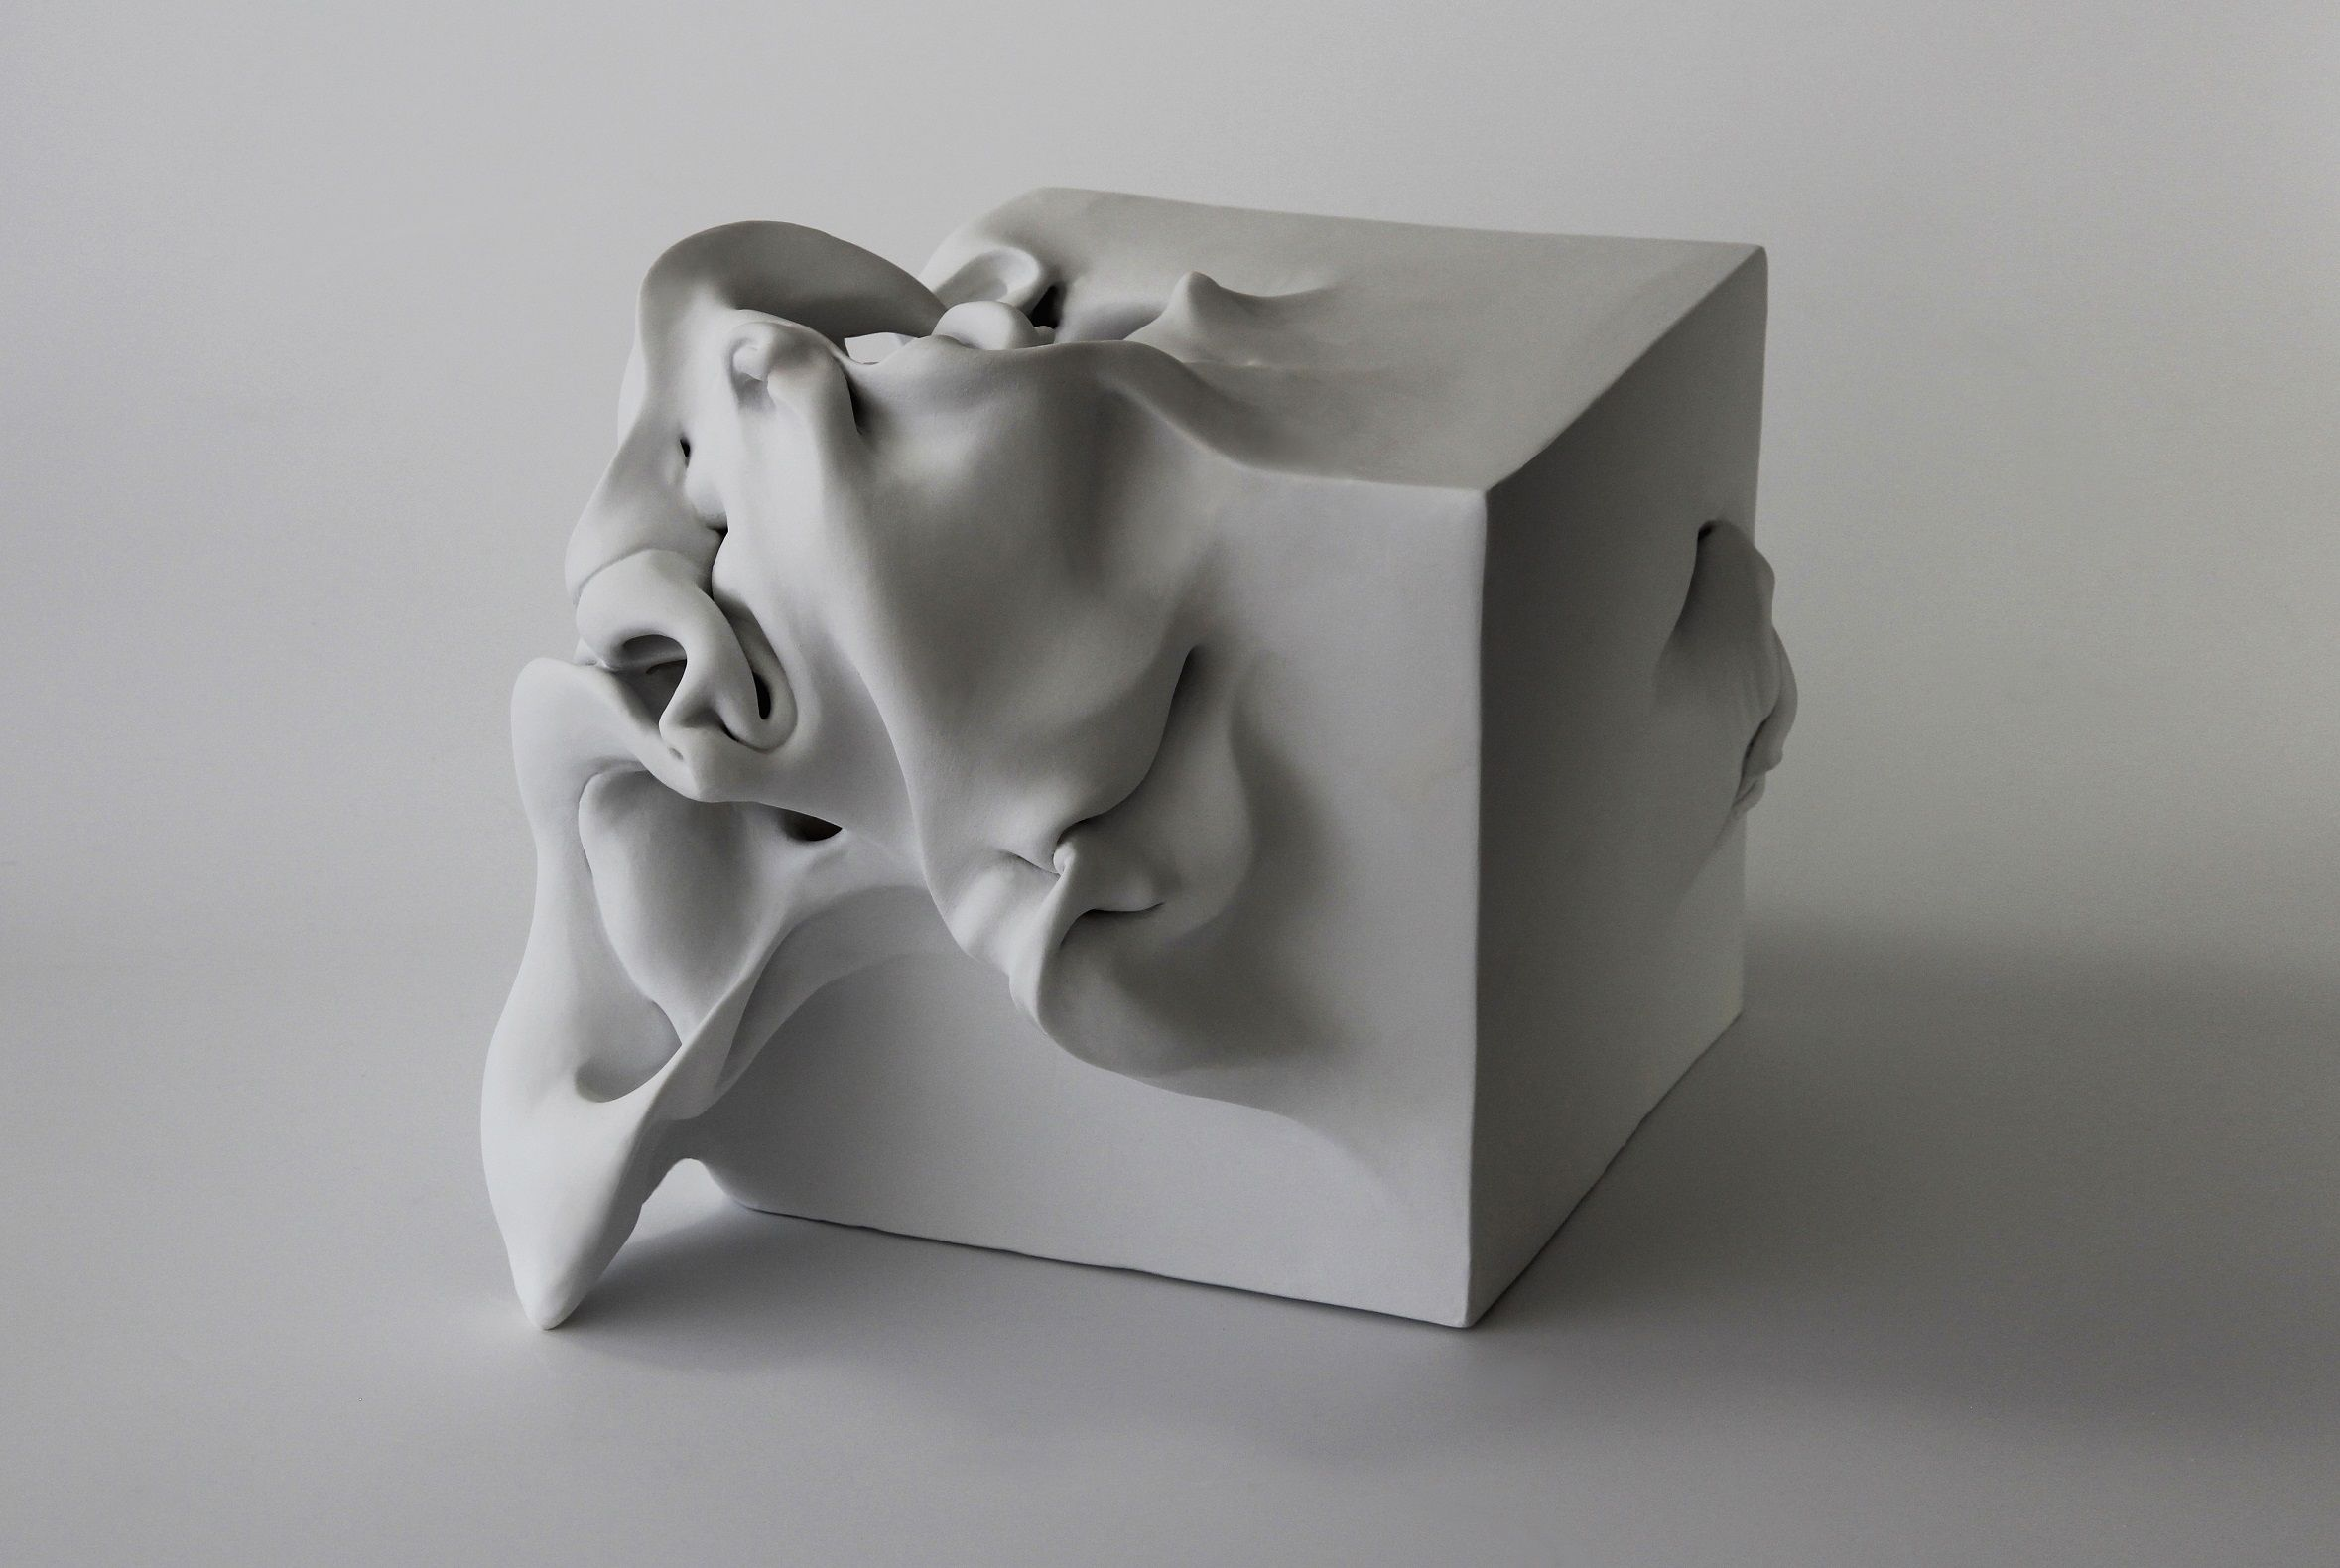 Cube 2,Sharon Brill,Sculpture contemporaine